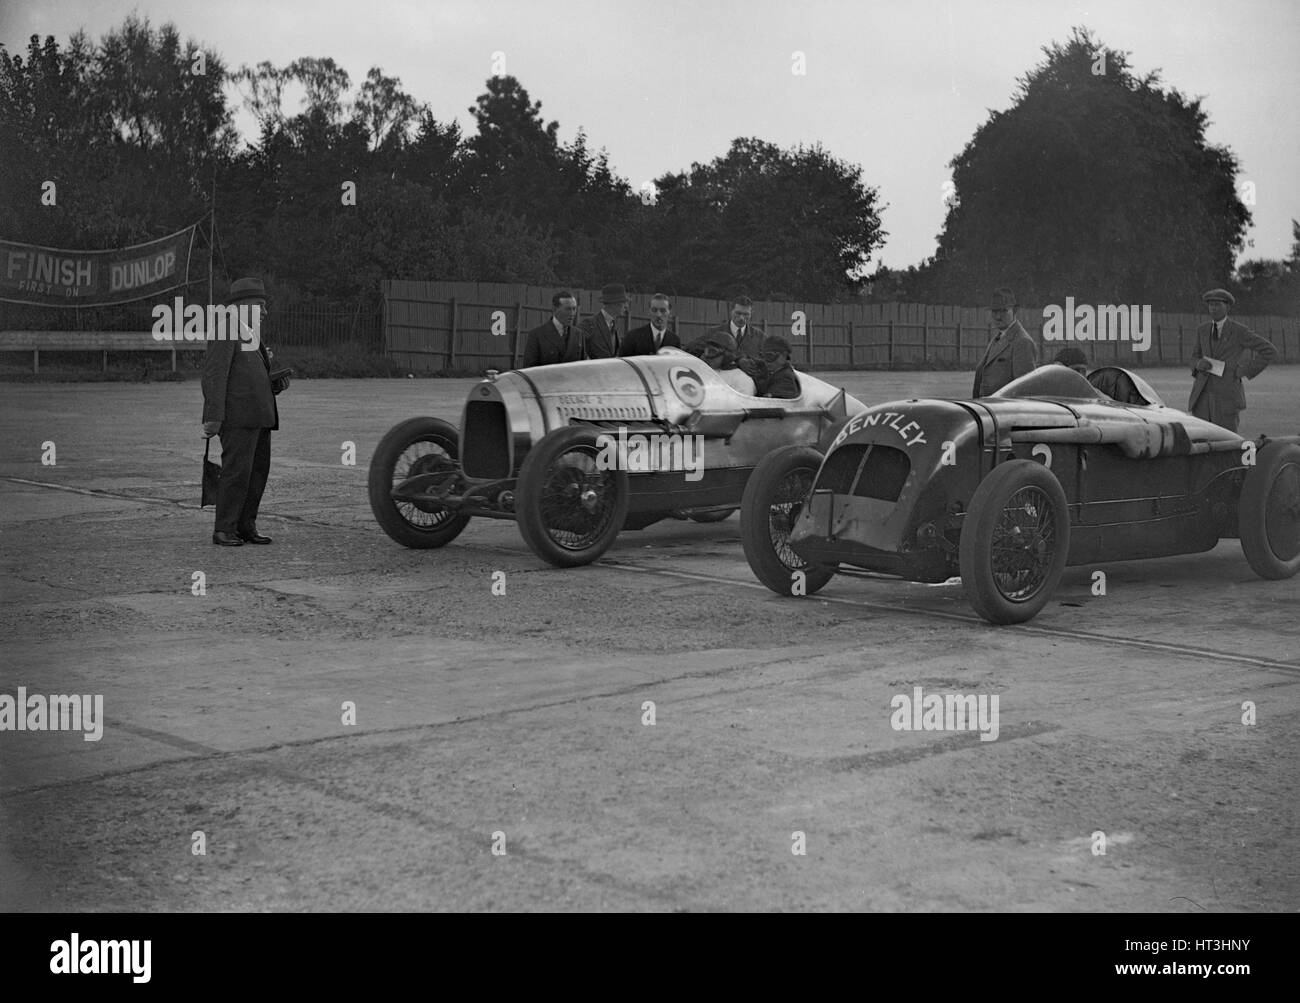 Delage of J Taylor and Bentley of Dudley Froy, Surbiton Motor Club race meeting, Brooklands, 1928. Artist: Bill - Stock Image